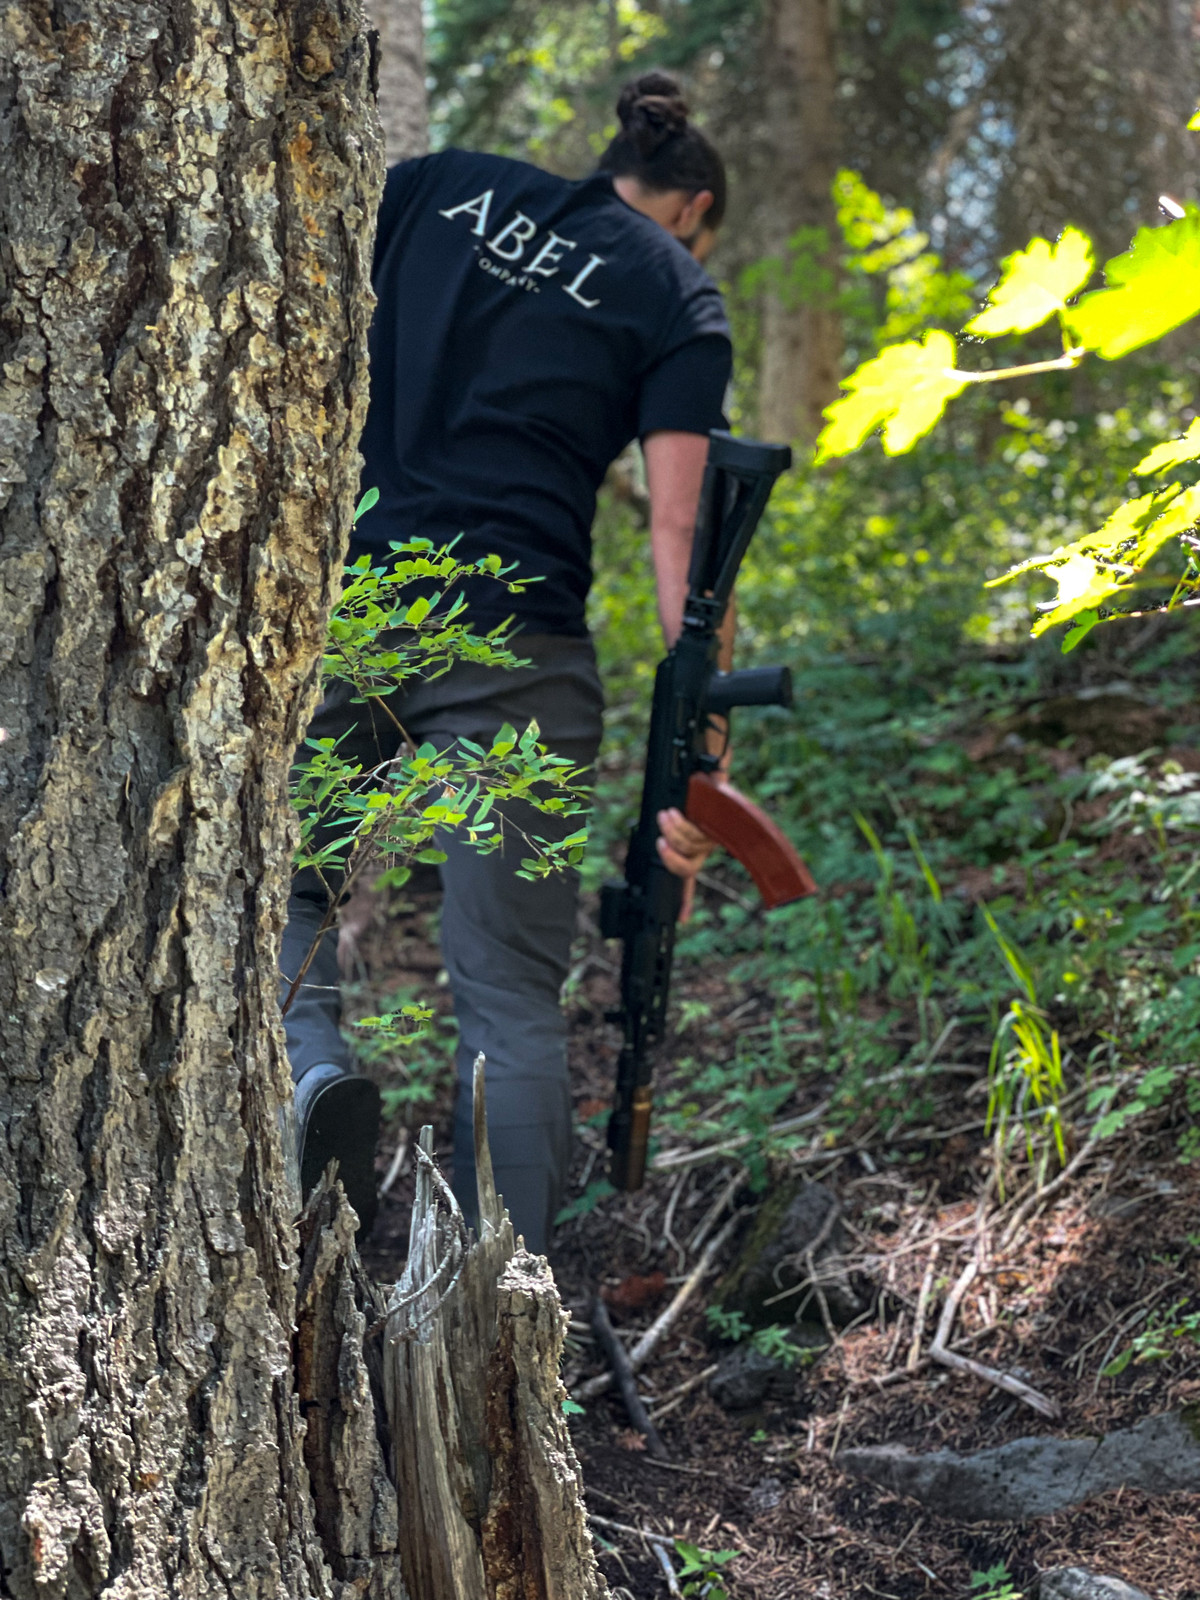 Picture of the Abel Company branded shirt in the forest on a man holding a rifle - the back of the shirt is in view.